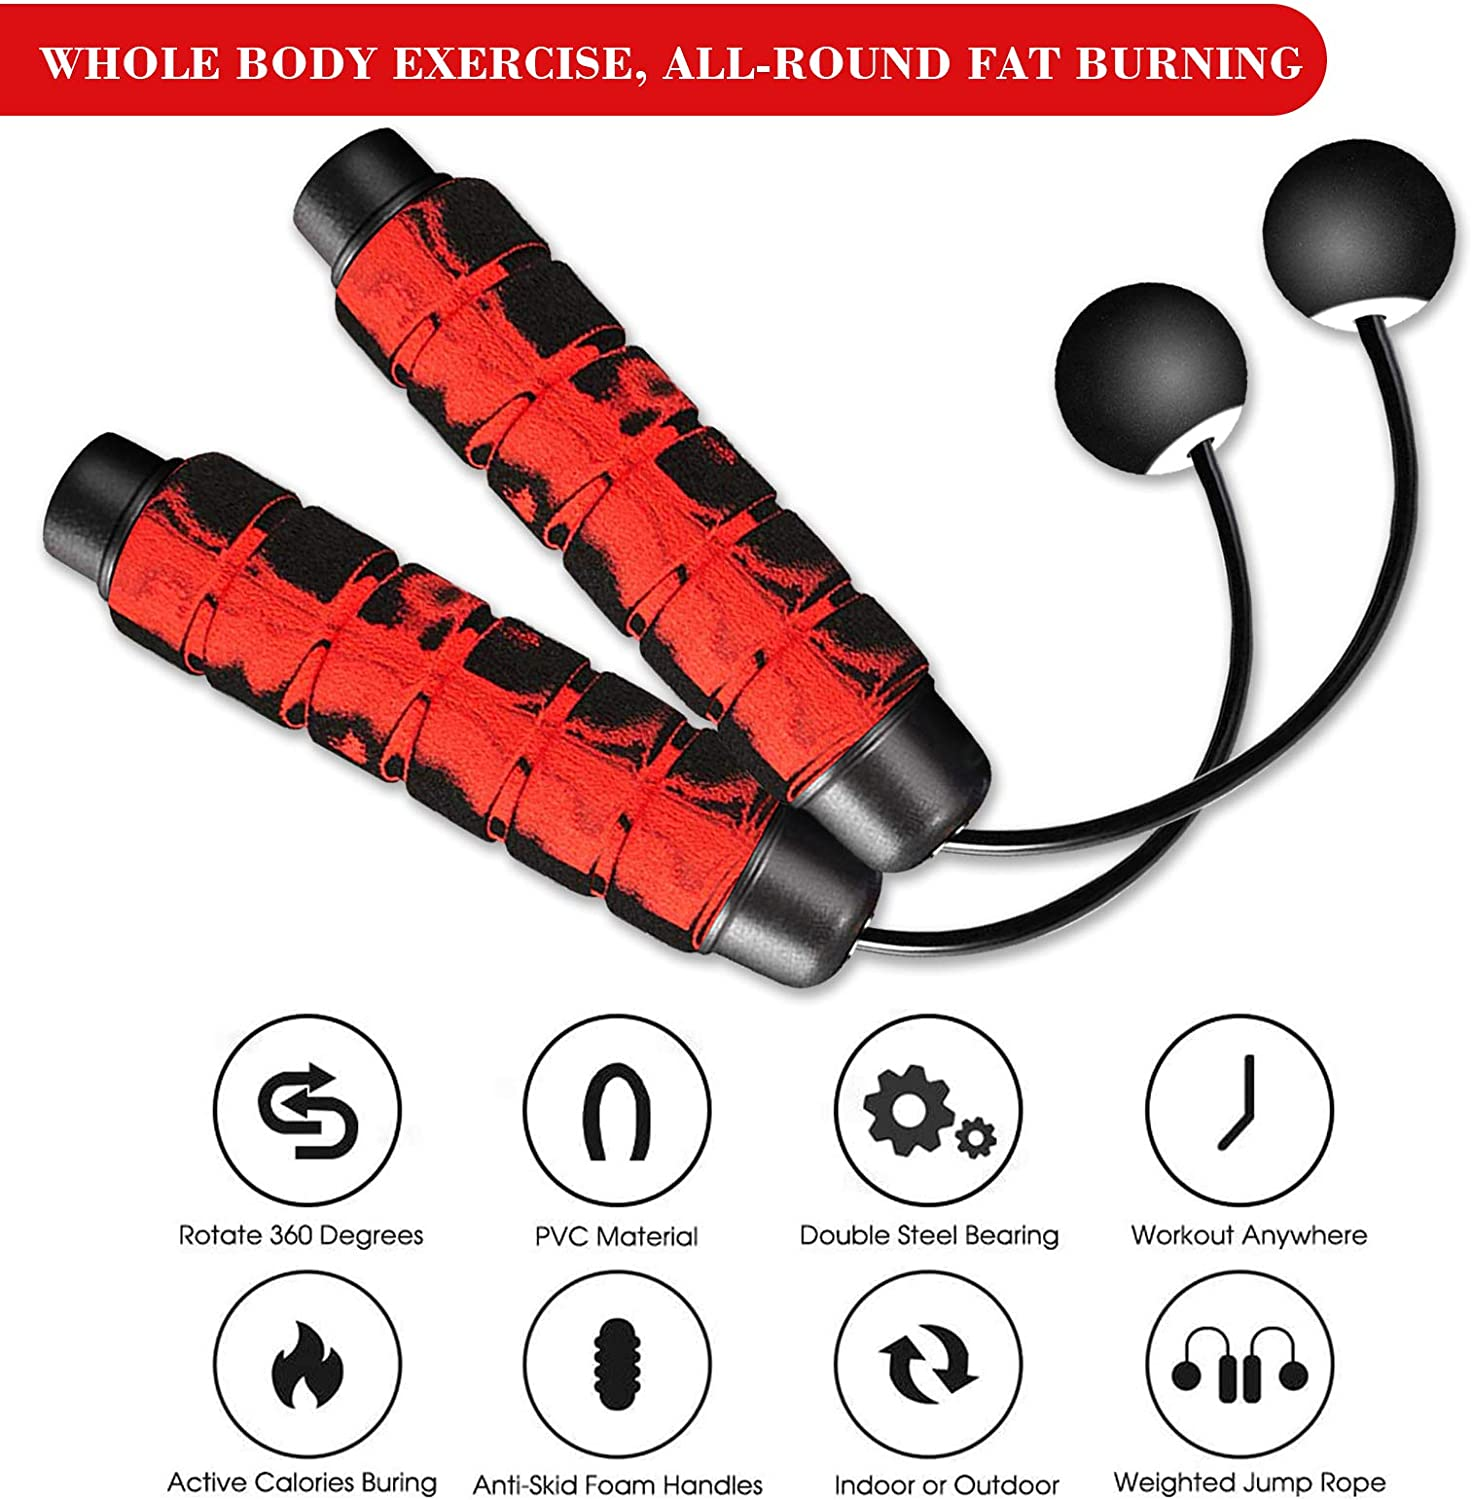 Redify Weighted Cordless Jump Rope for Fitness Ropeless Jump Rope for Crossfit Boxing MMA WOD Training Suitable for Different Ages and Levels High Speed Skipping Rope for Narrow Space